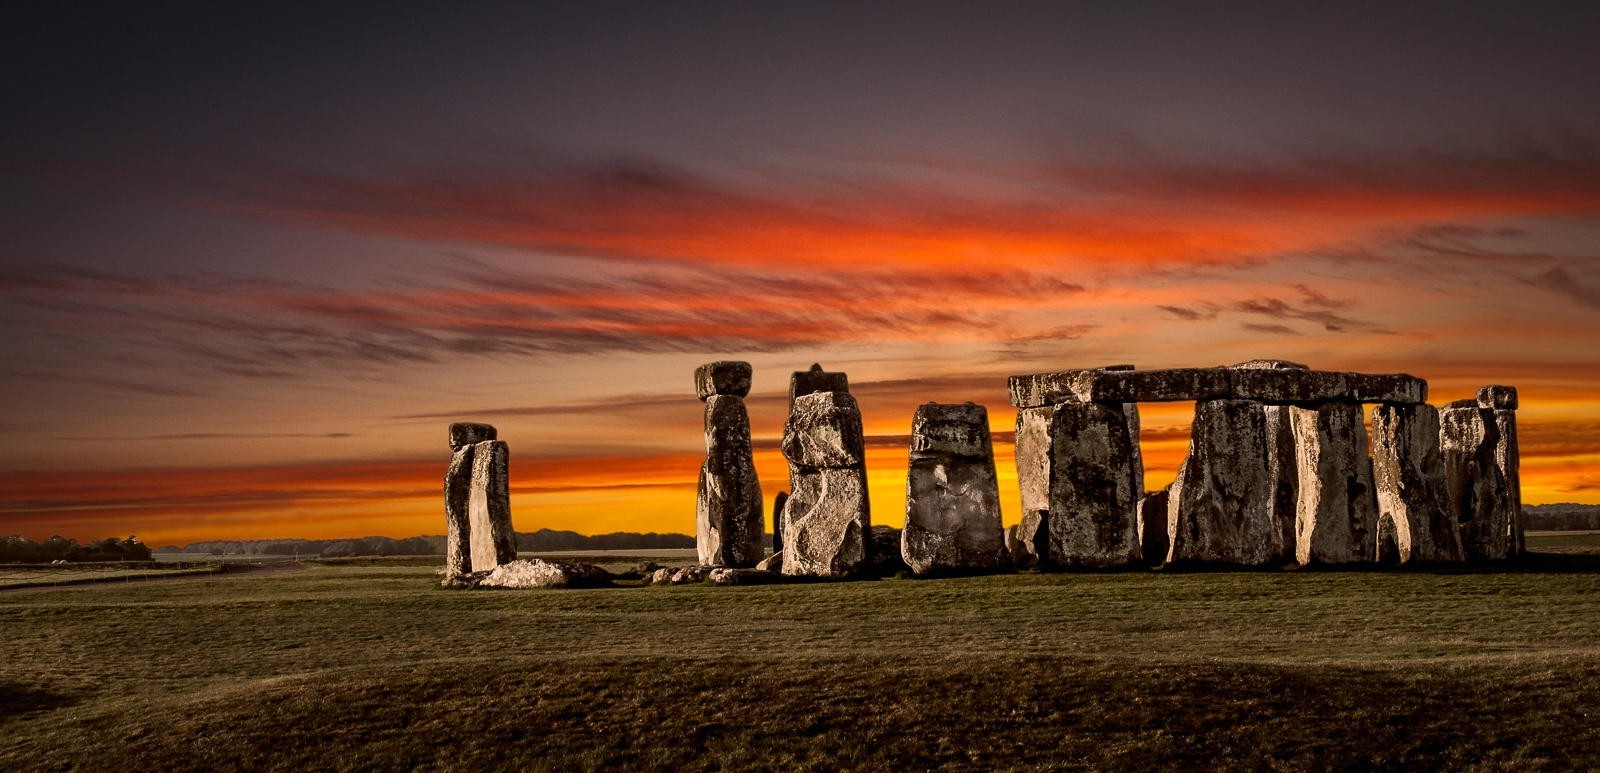 Hd Wallpapers Fire Cars Nature Landscape Fire Stones Sunset Stonehenge